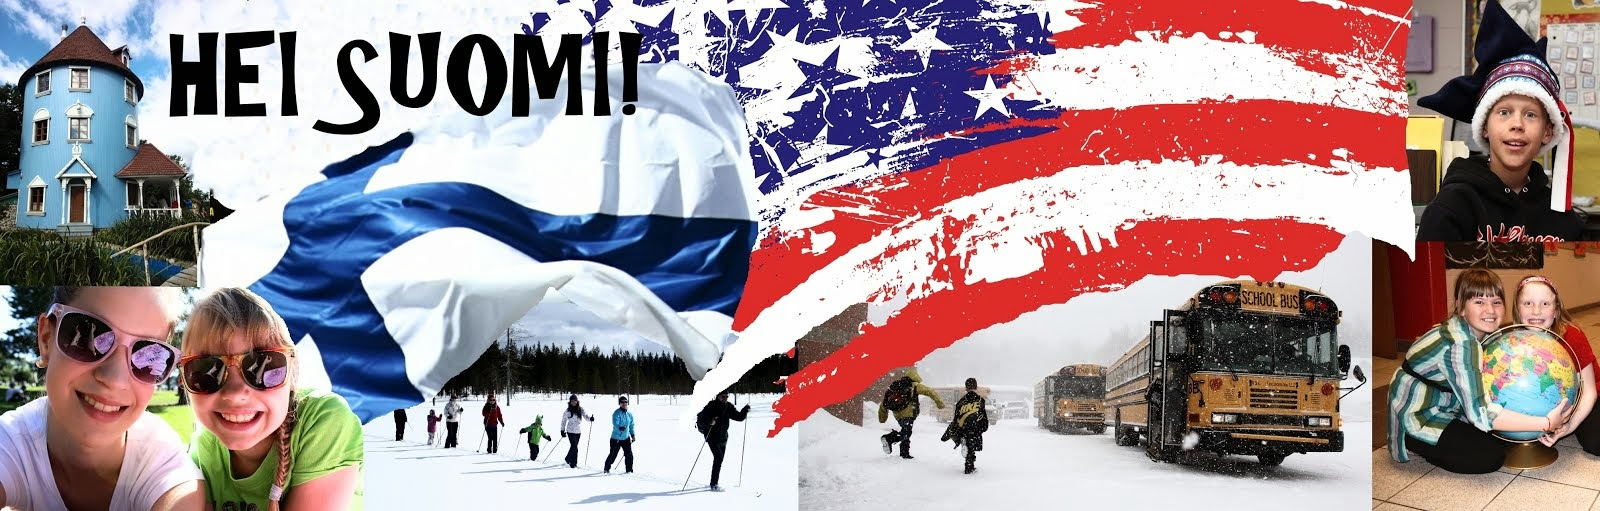 HEI SUOMI! PROGRAM